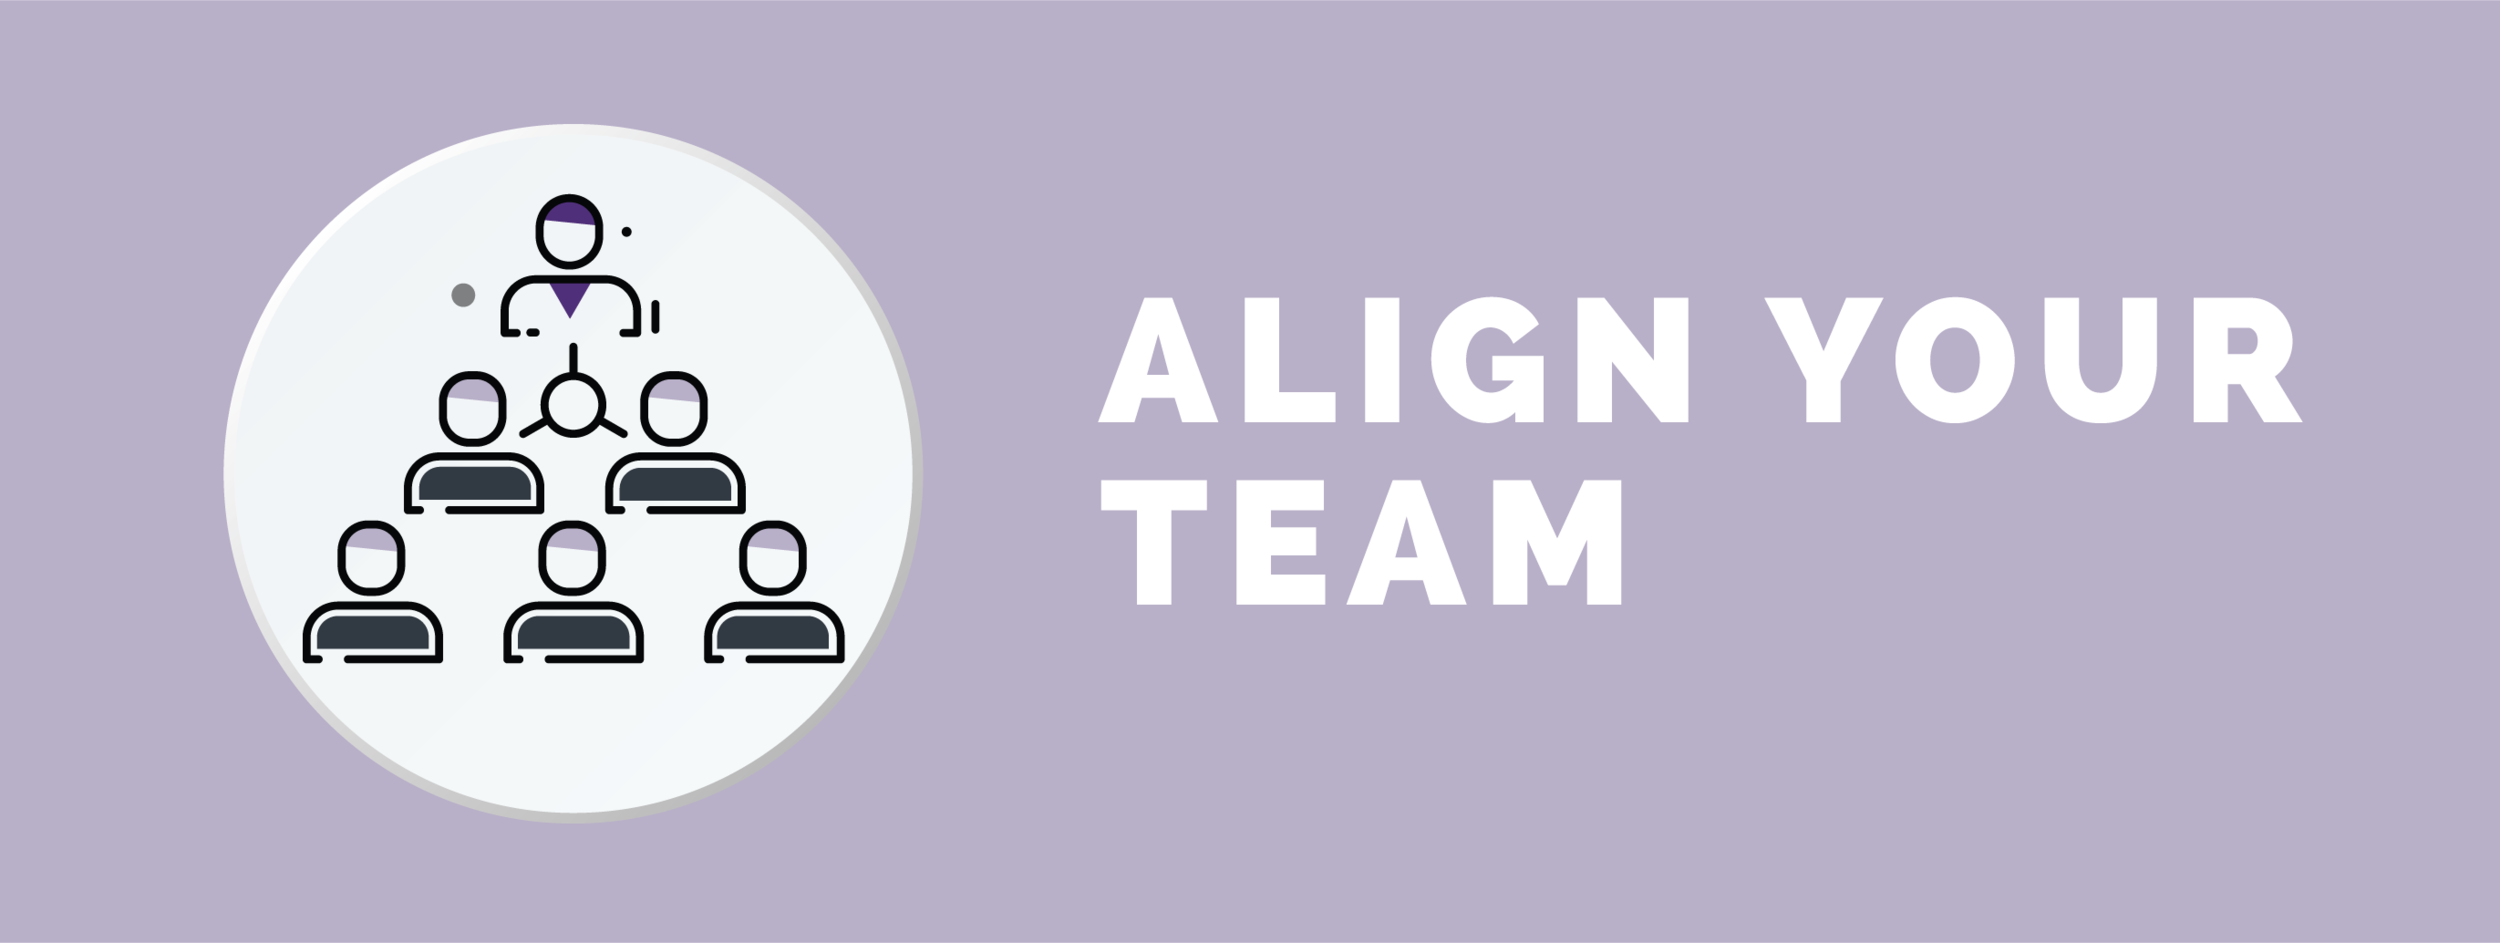 Align your team